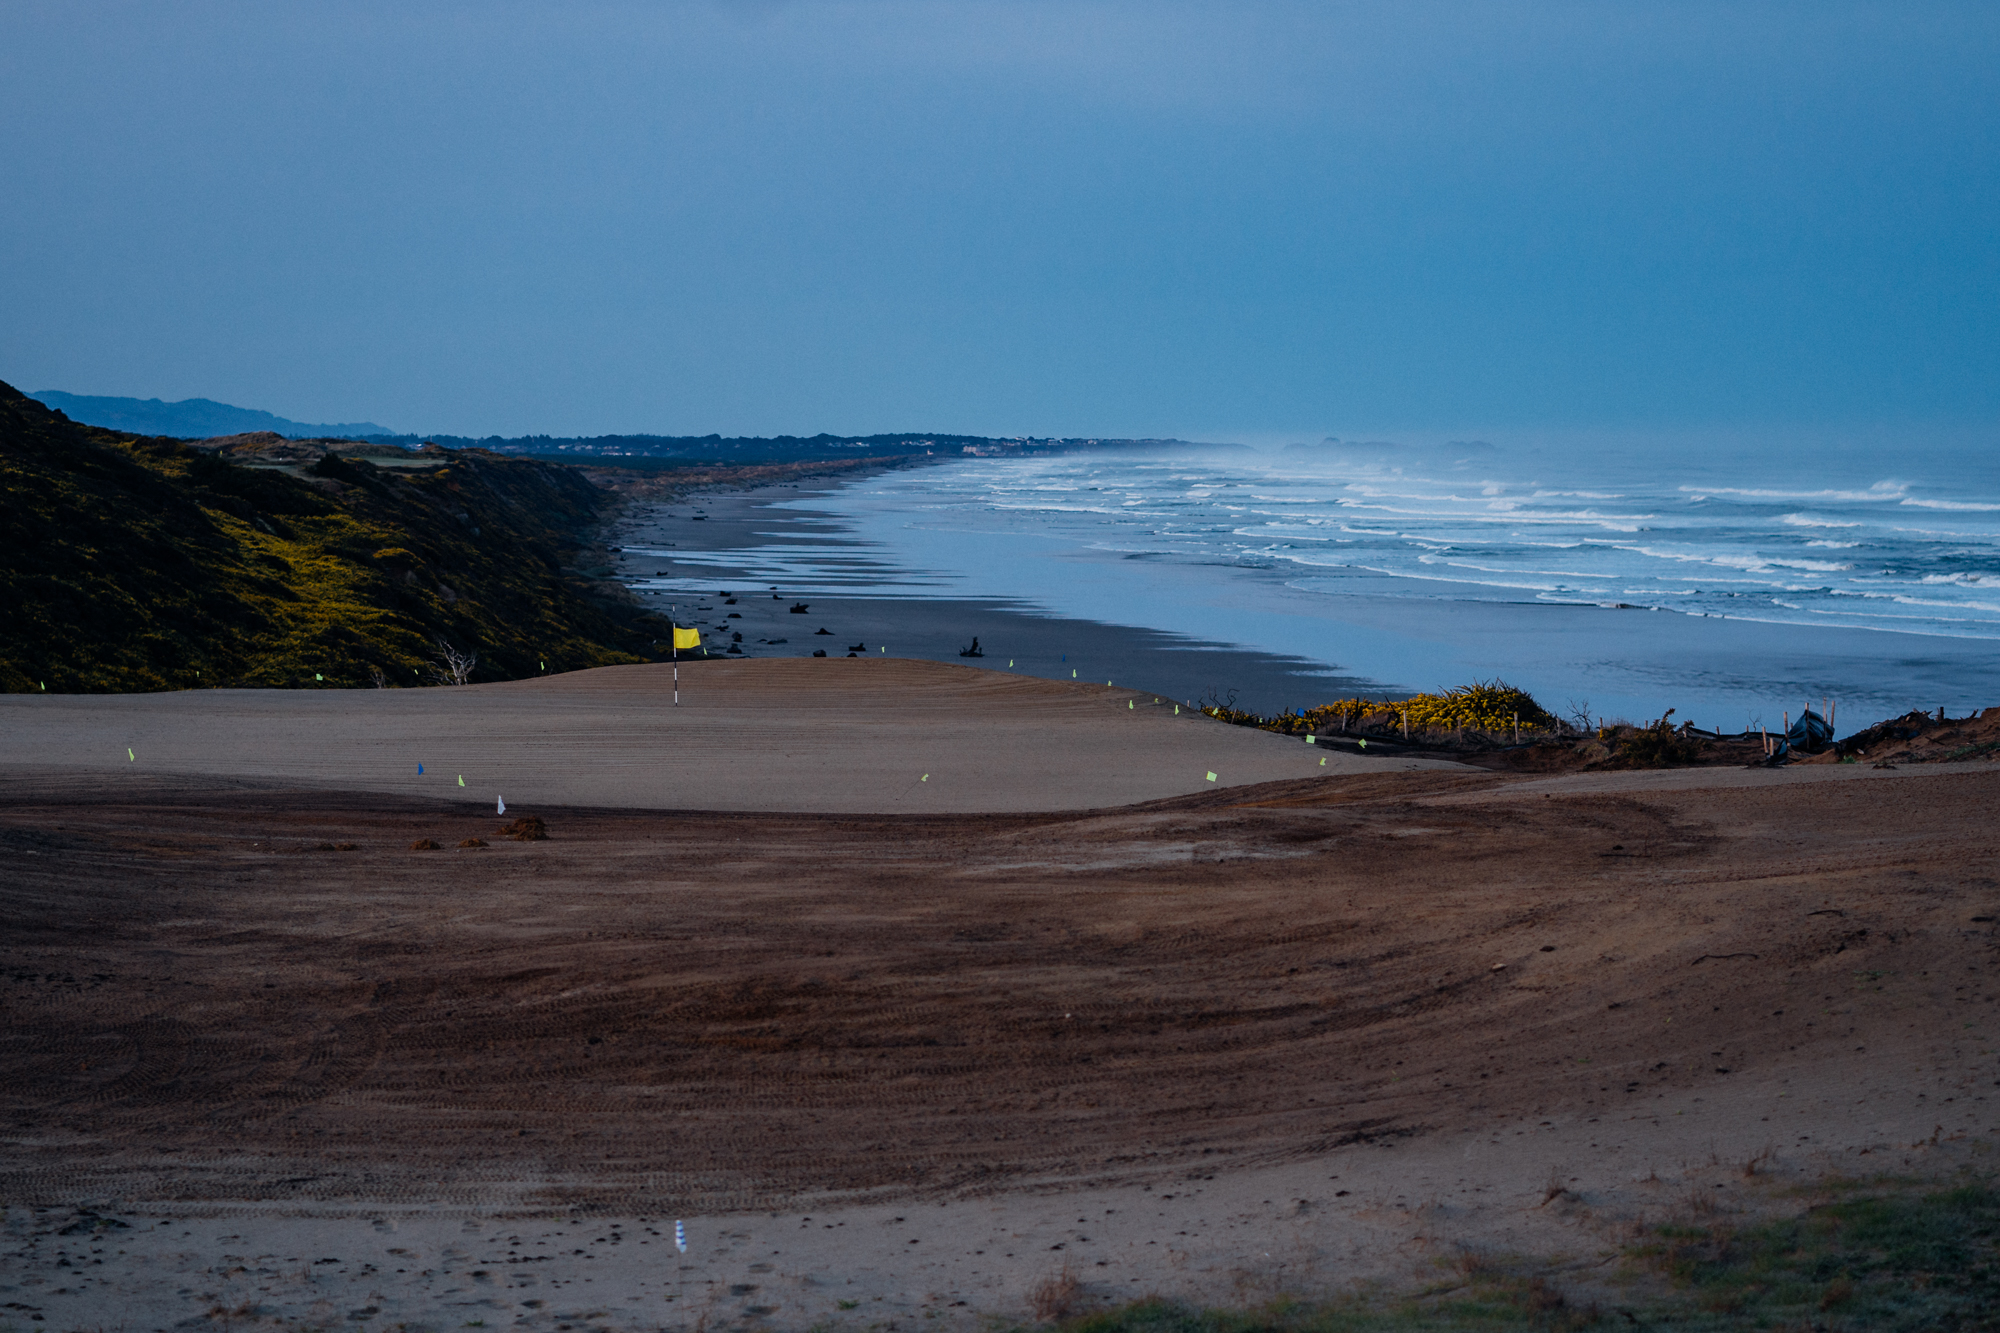 A new green site takes shape overlooking the rest of Bandon Dunes Golf Resort.